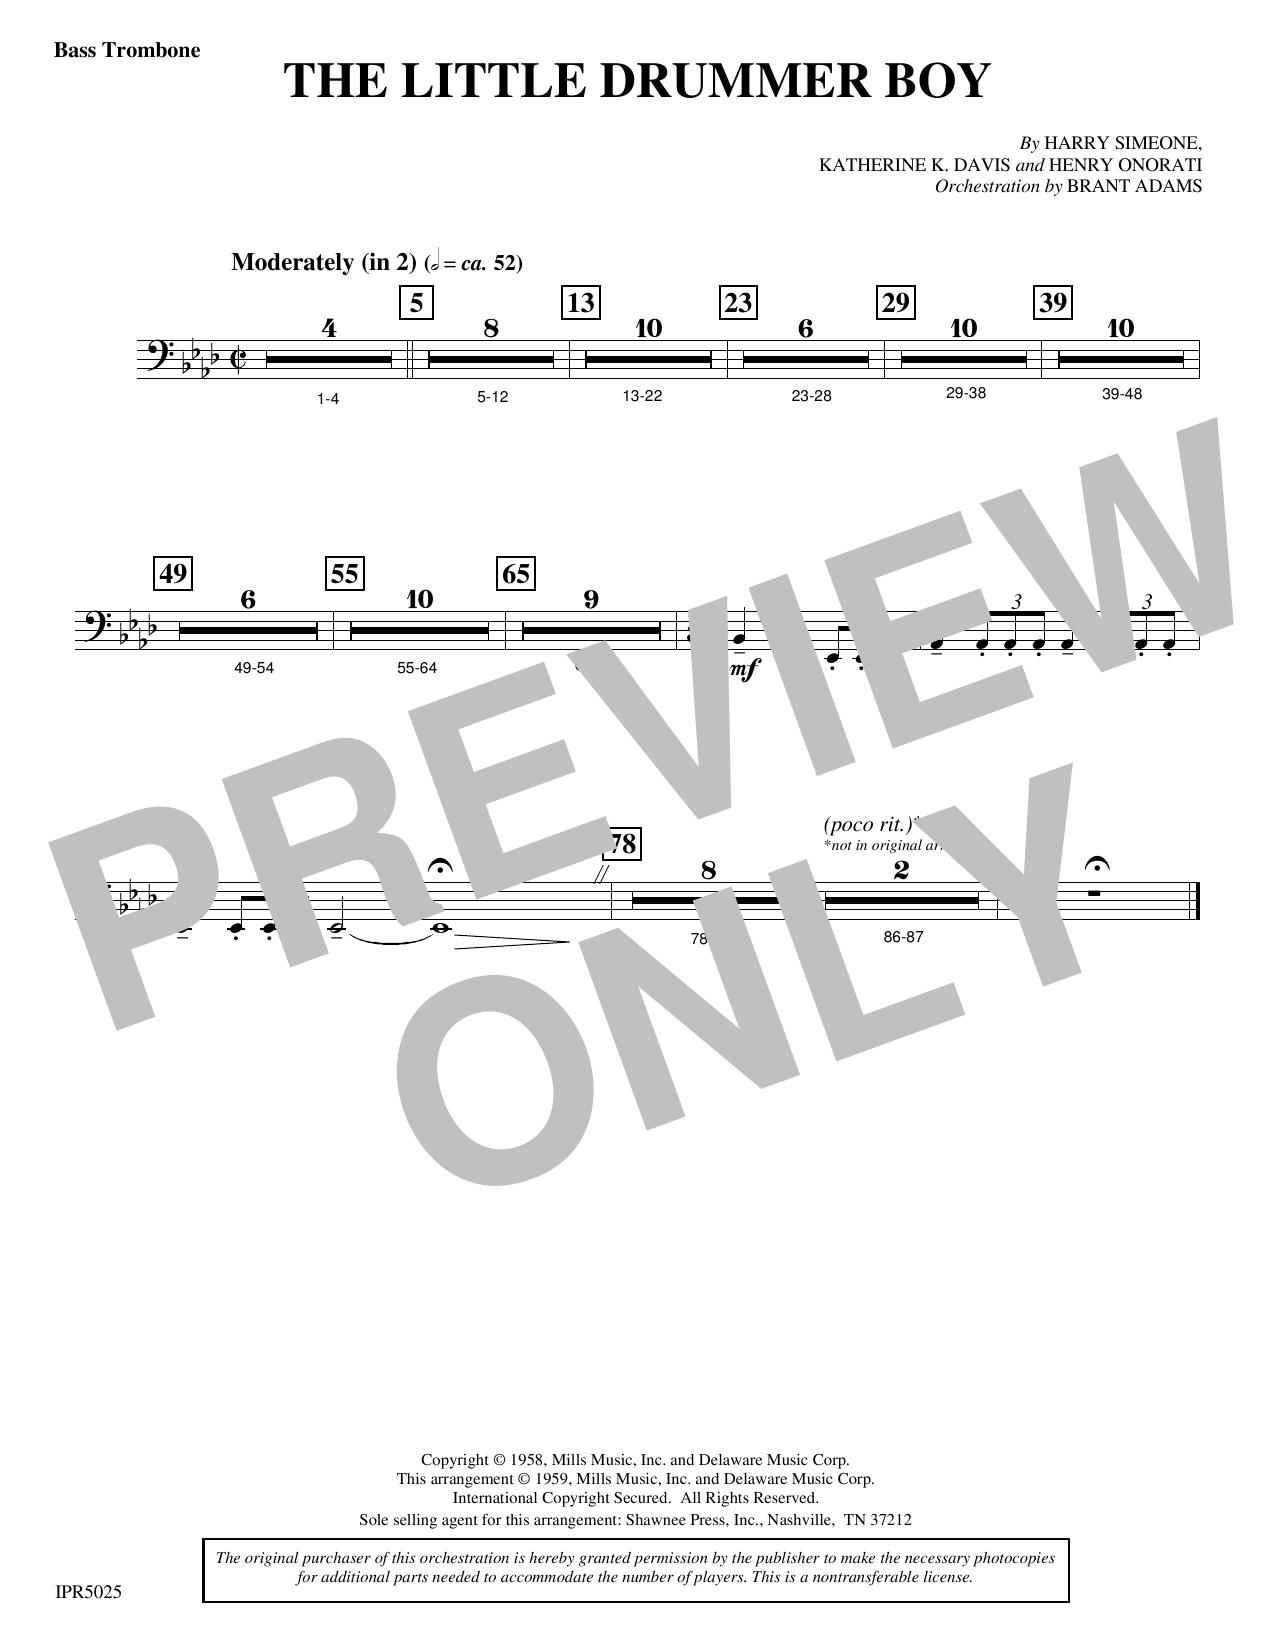 The Little Drummer Boy - Bass Trombone Digitale Noten